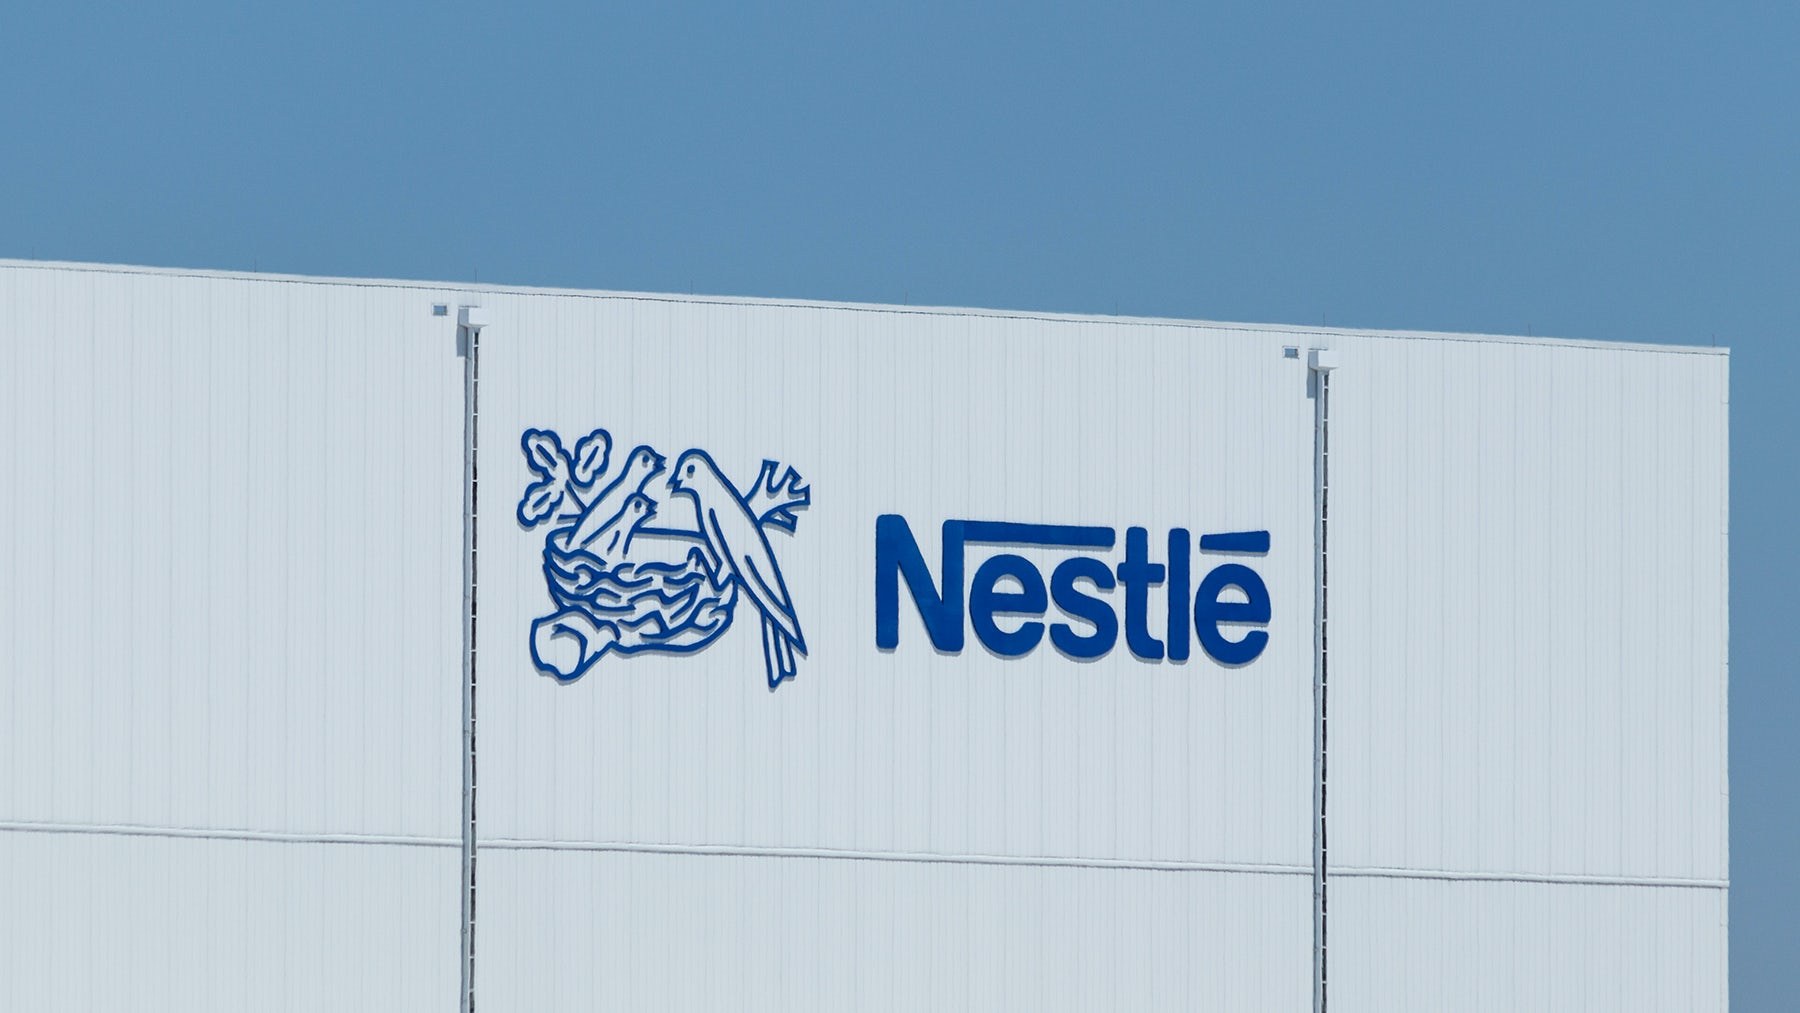 Nestle manufacturing plant | Source: Shutterstock